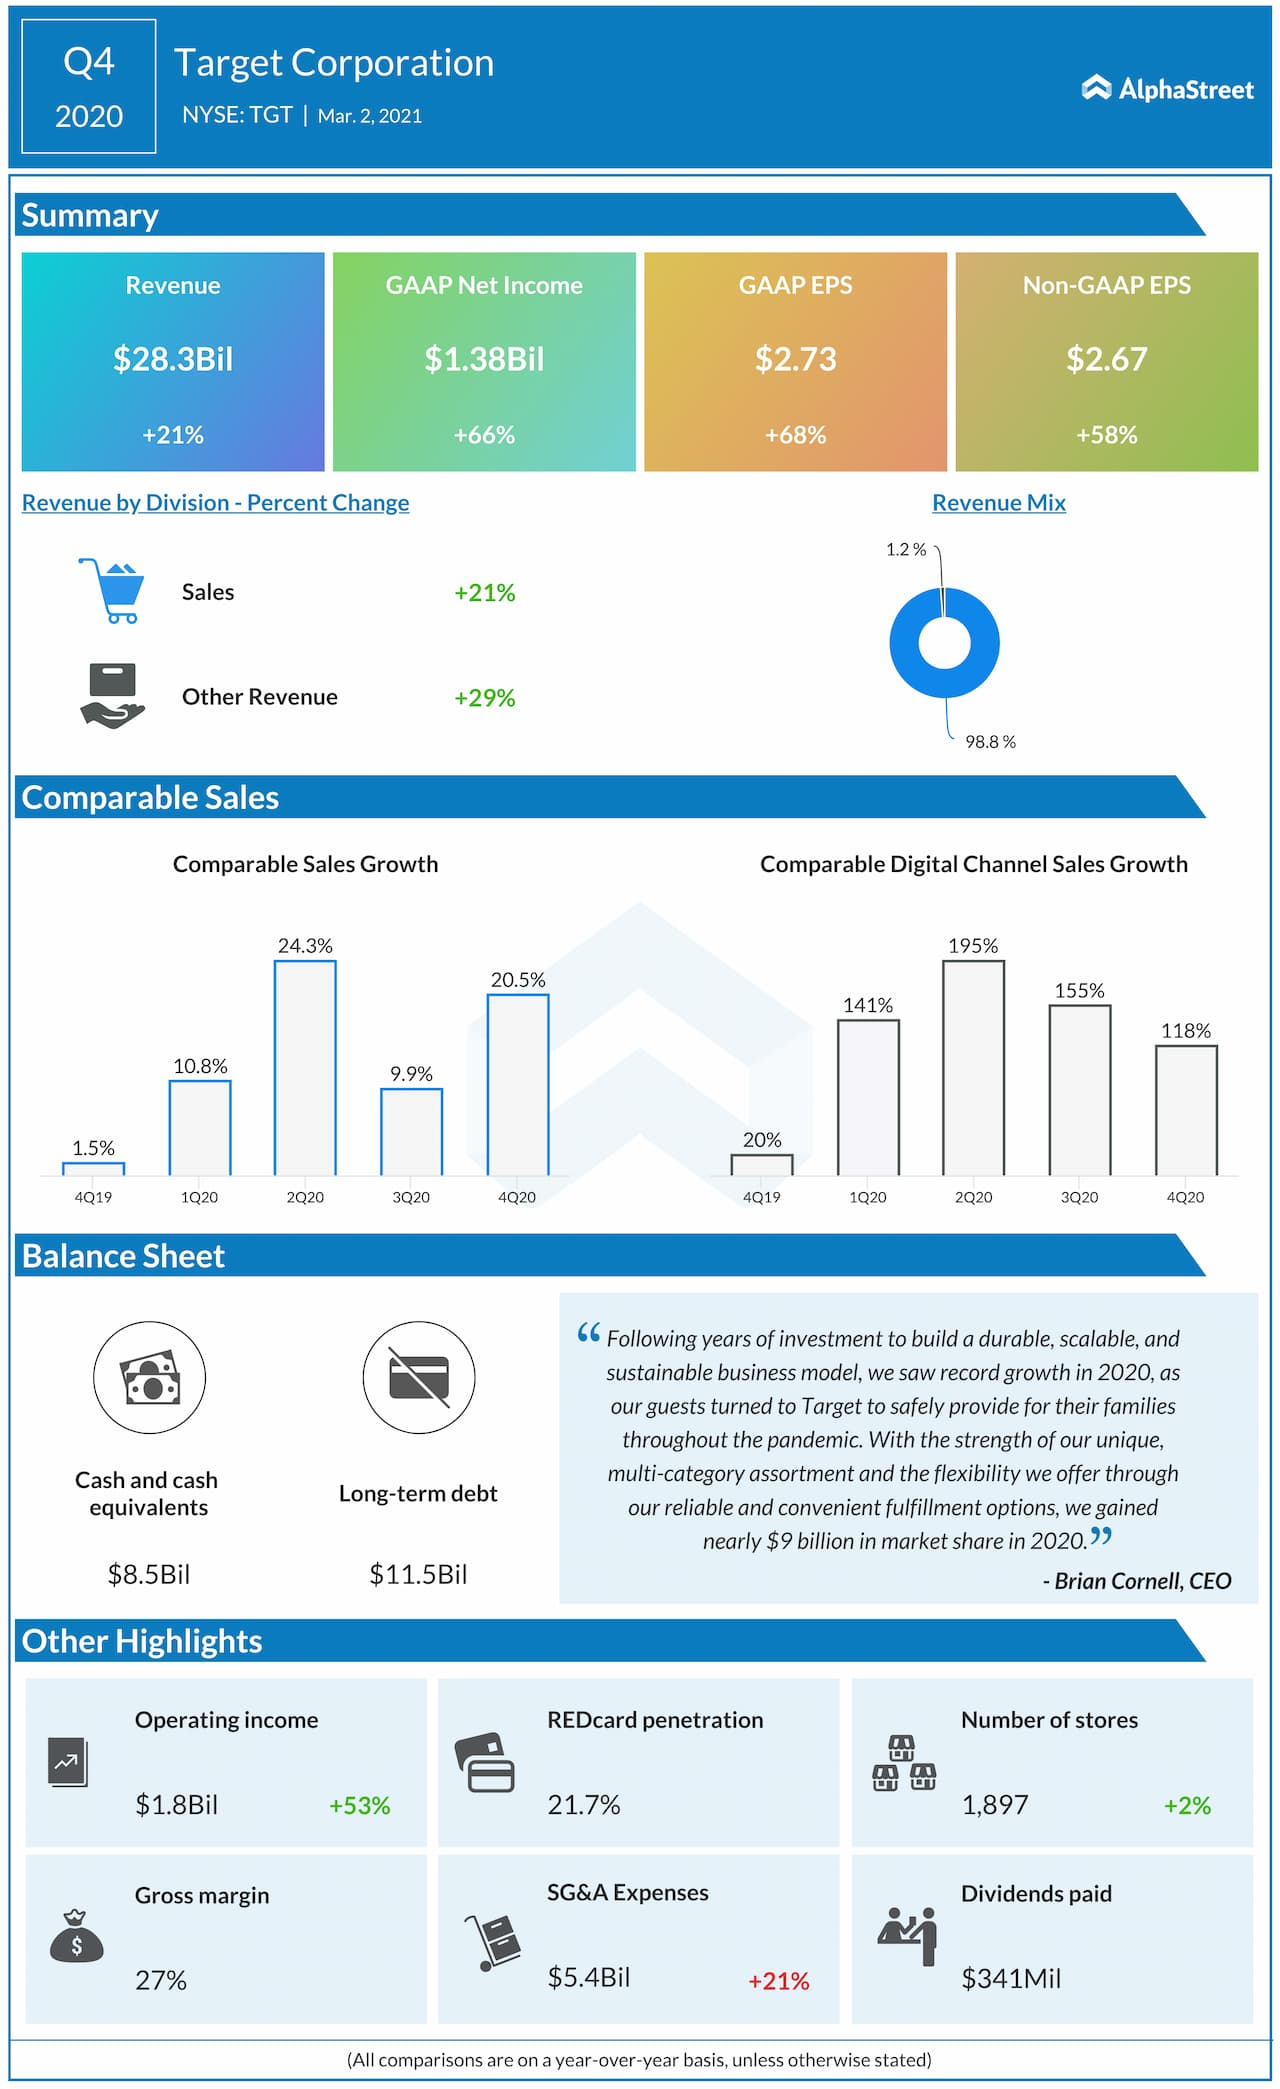 Target Corp. Q4 2020 earnings infographic